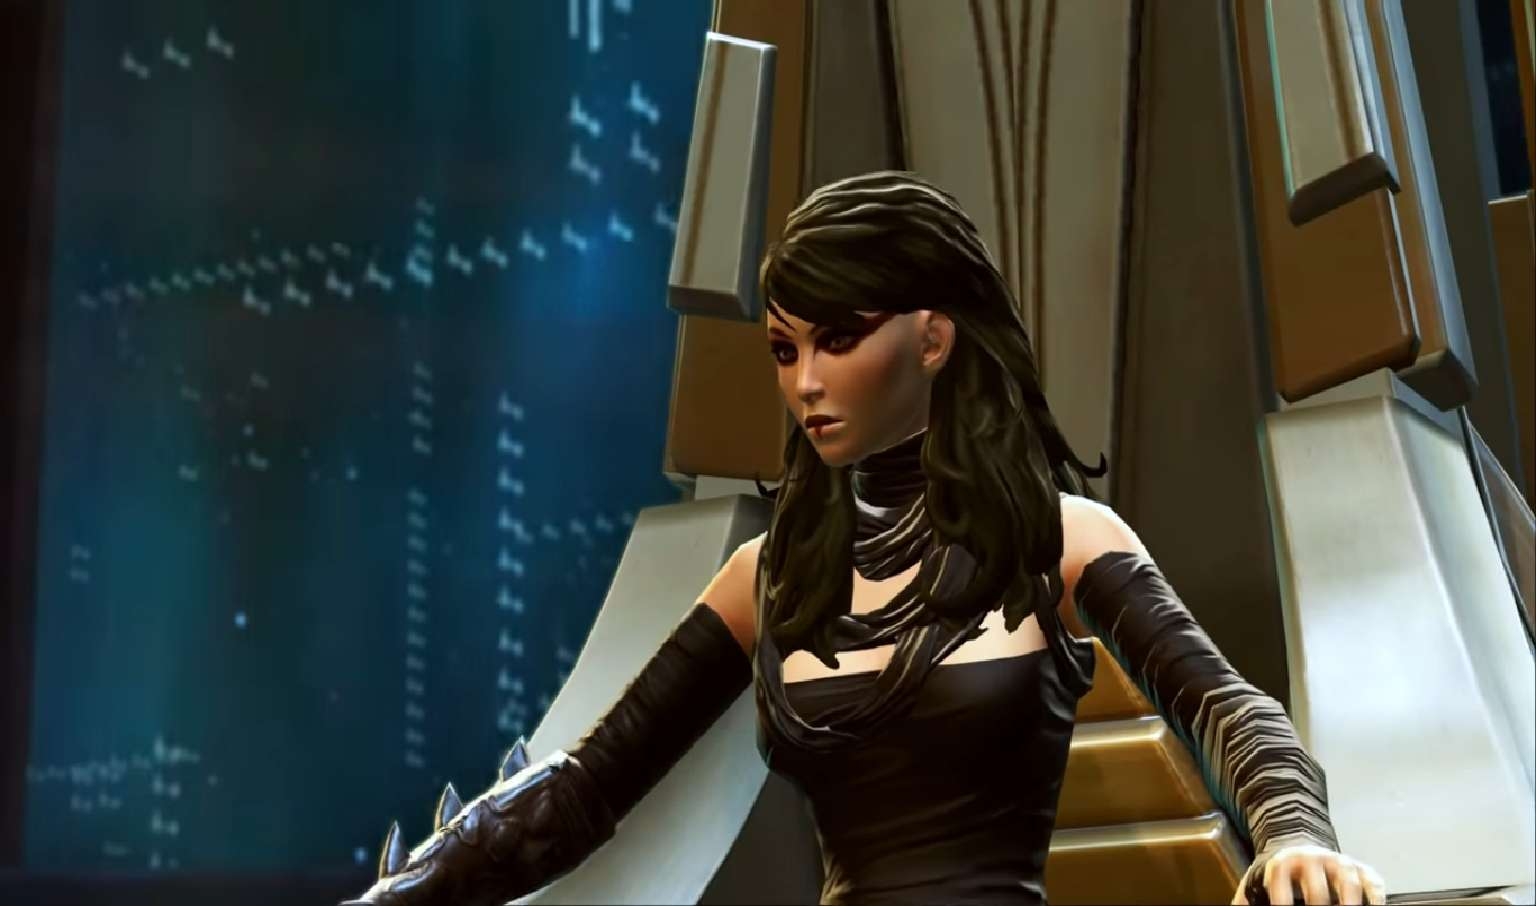 Eric Musco Talks About What's To Come In Star Wars The Old Republic's Upcoming Content